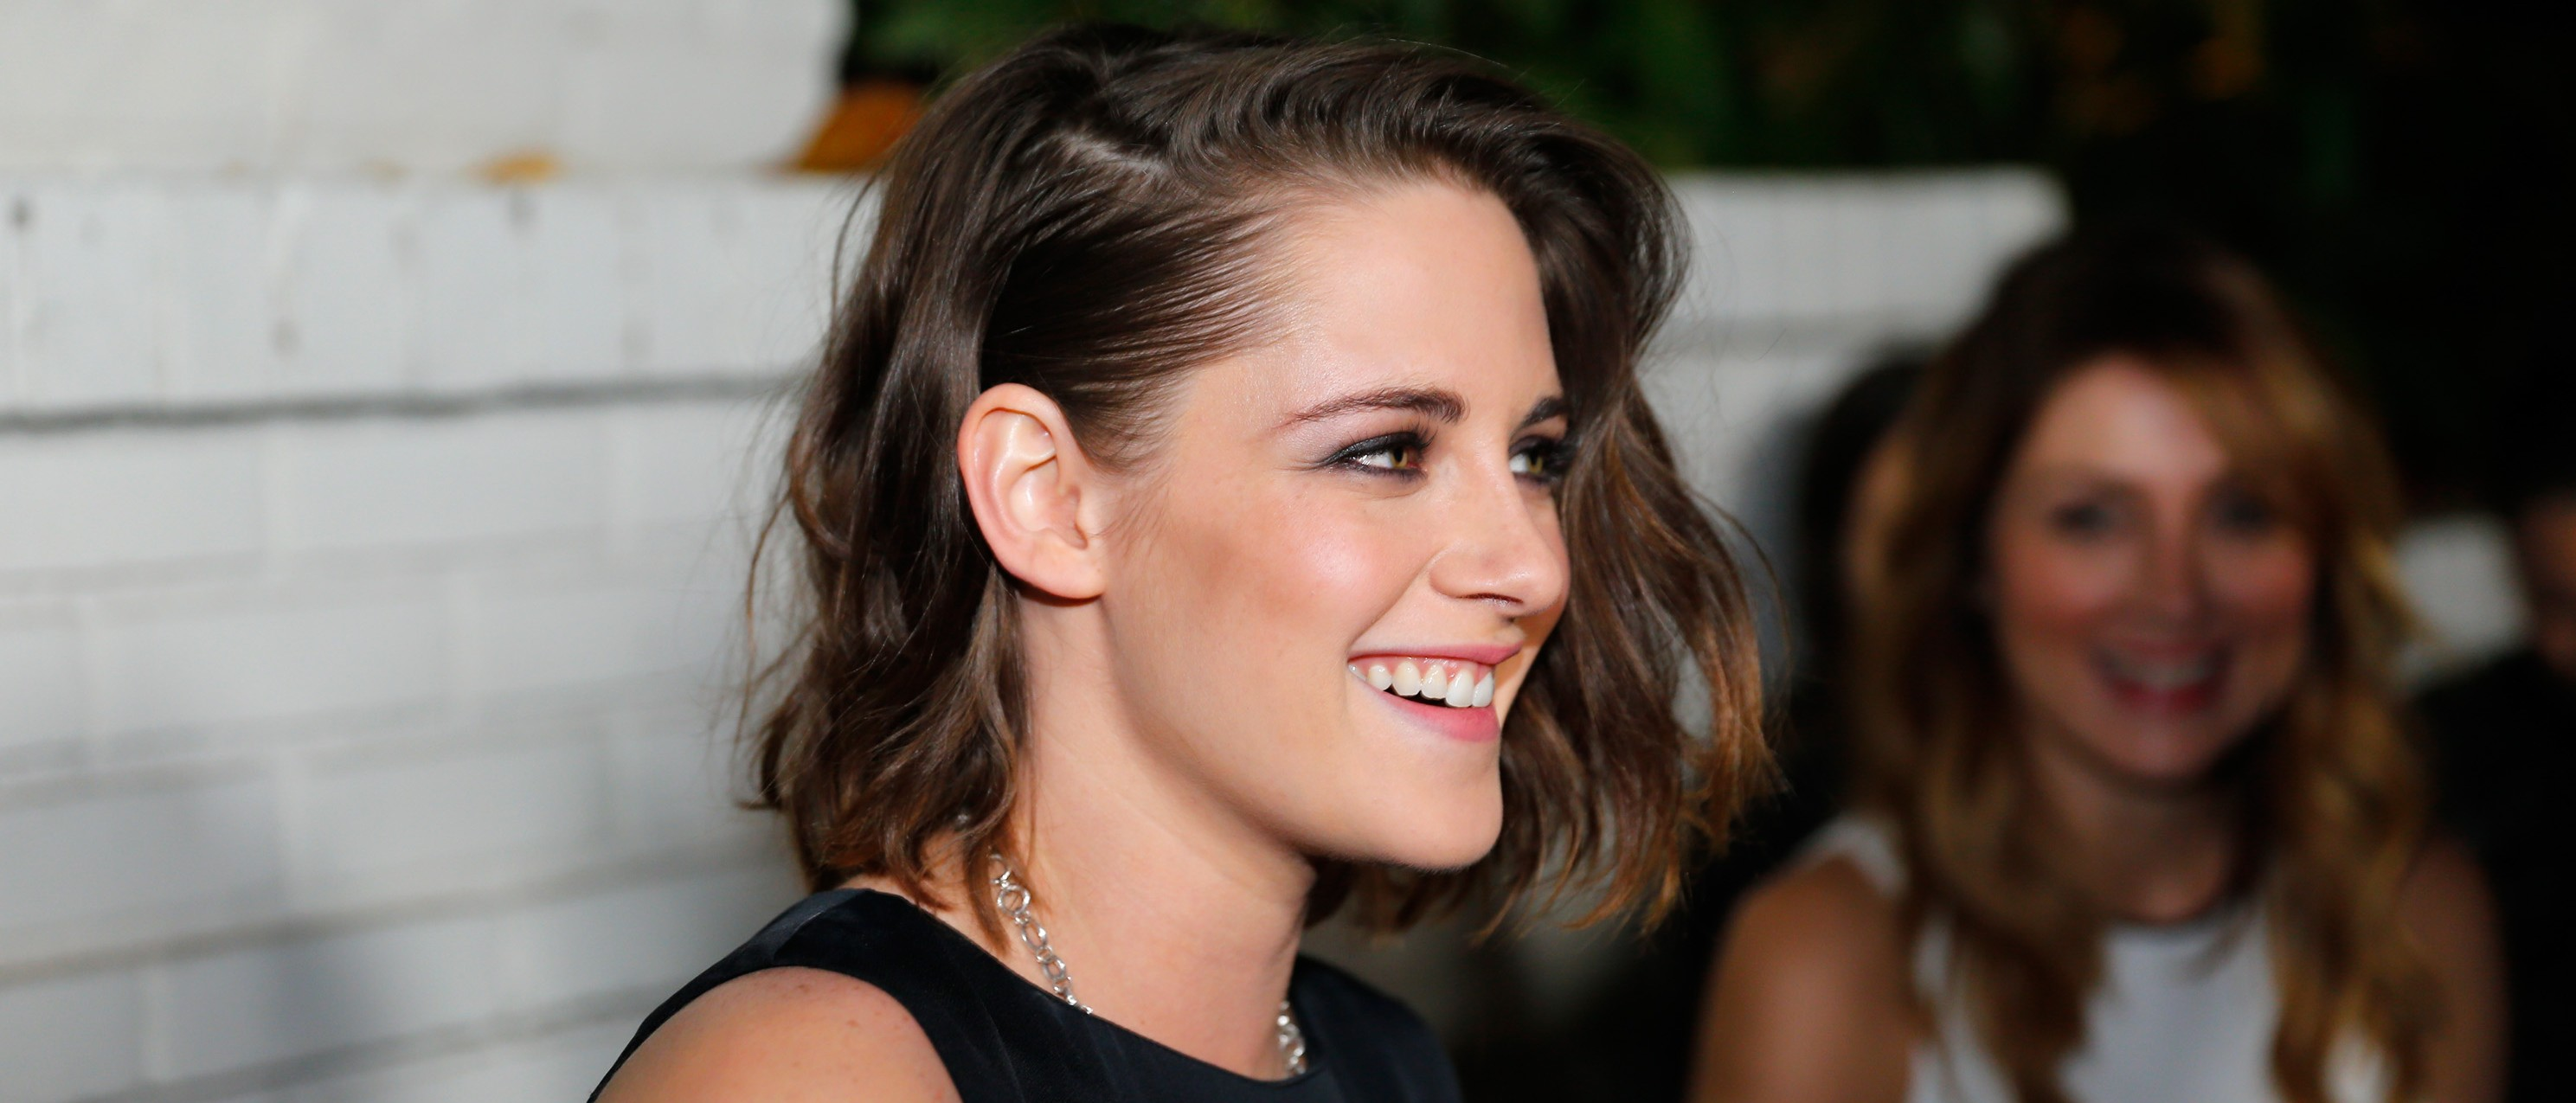 LOS ANGELES, CA - JANUARY 12: Actress Kristen Stewart attends the inaugural Image Maker Awards hosted by Marie Claire at Chateau Marmont on January 12, 2016 in Los Angeles, California. (Photo by Rich Polk/Getty Images for Marie Claire)